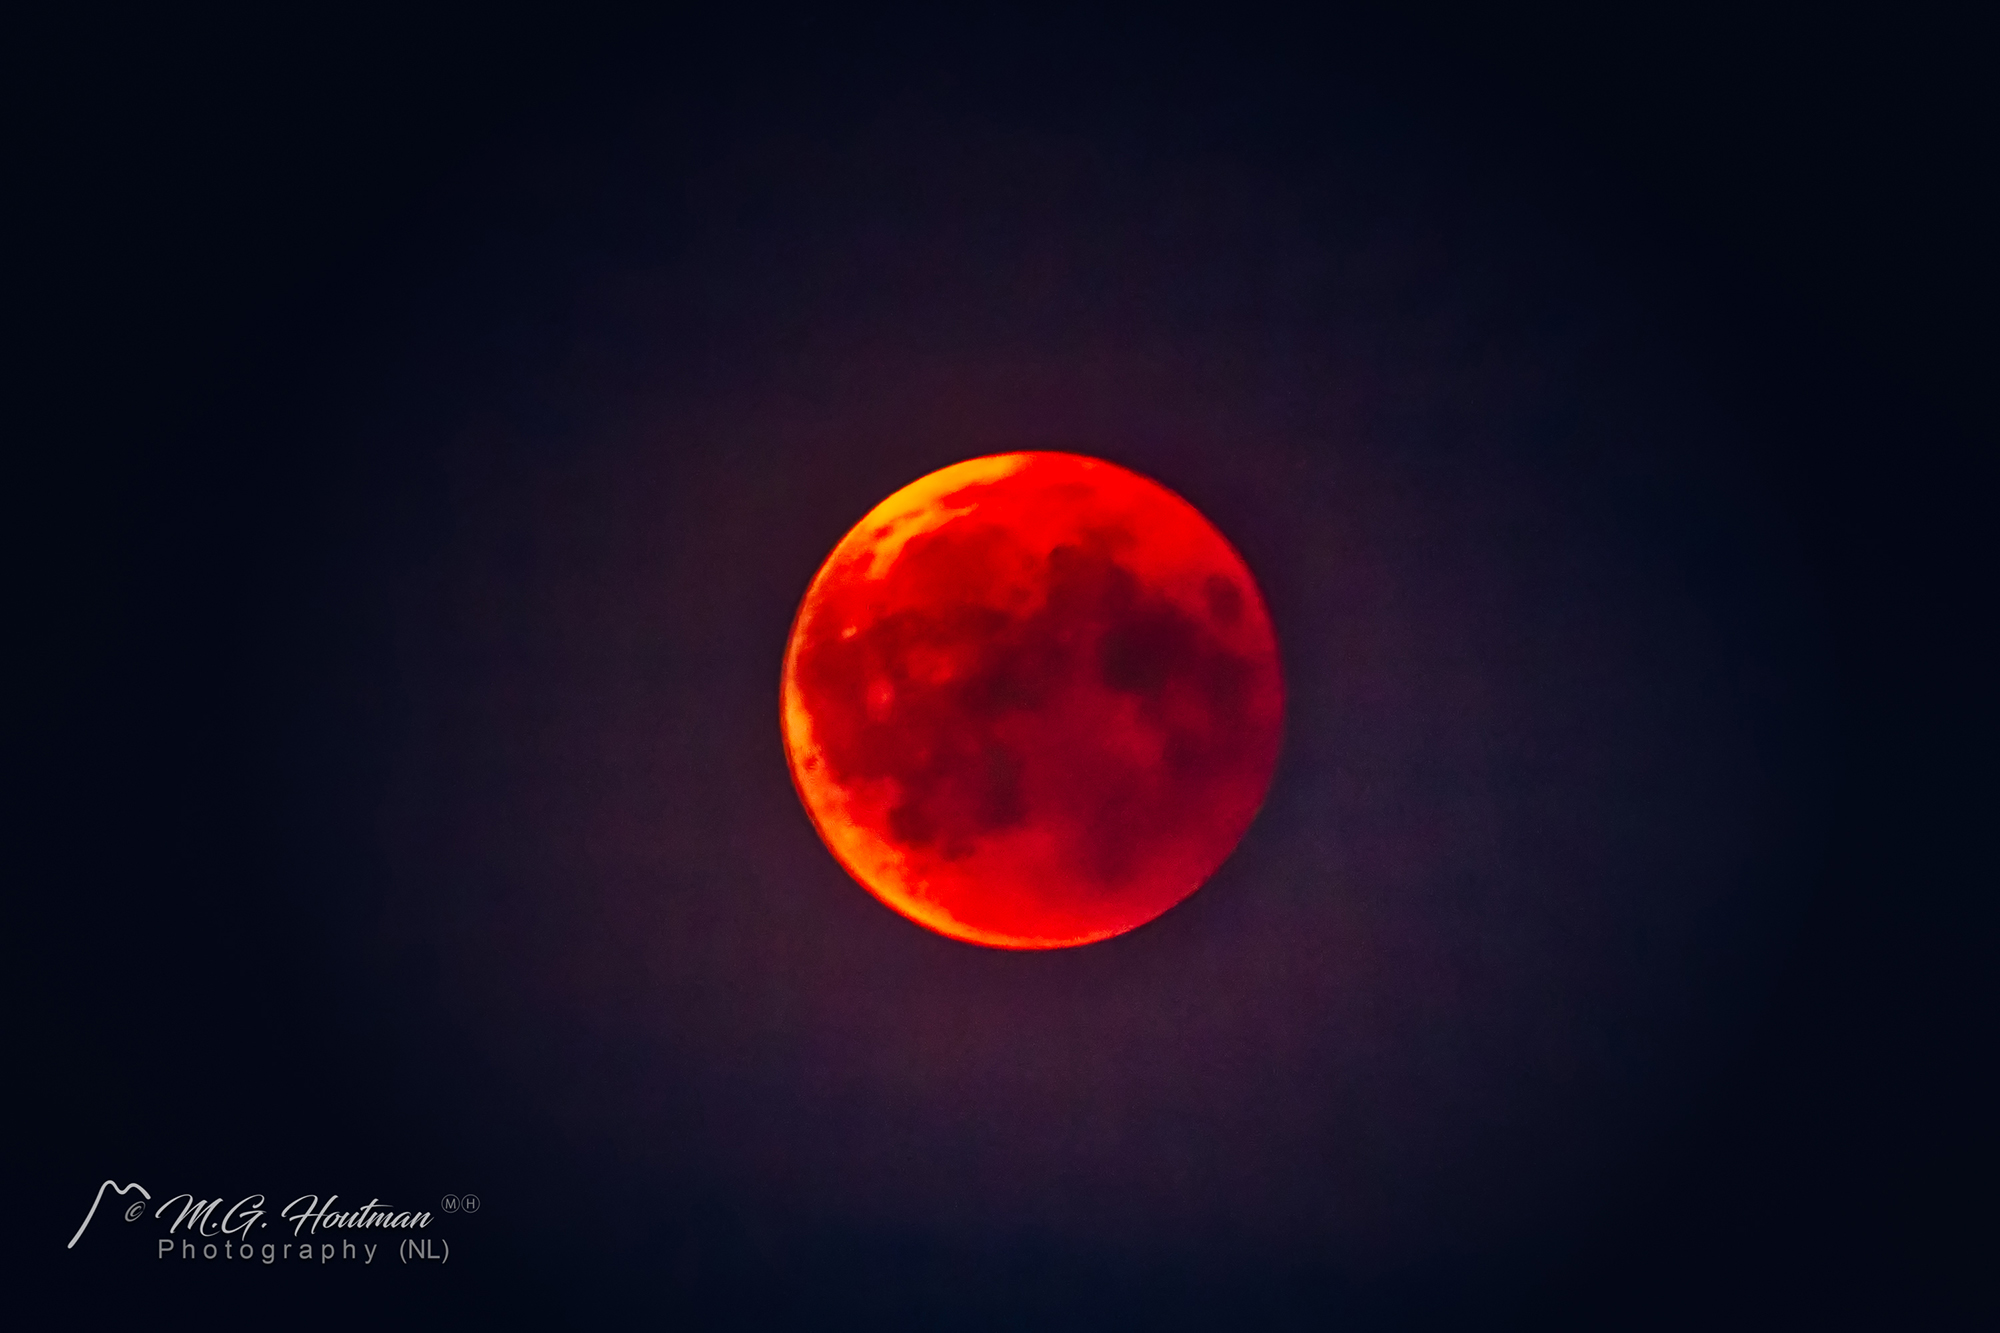 Just after the total lunar eclipse - 27 July 2018